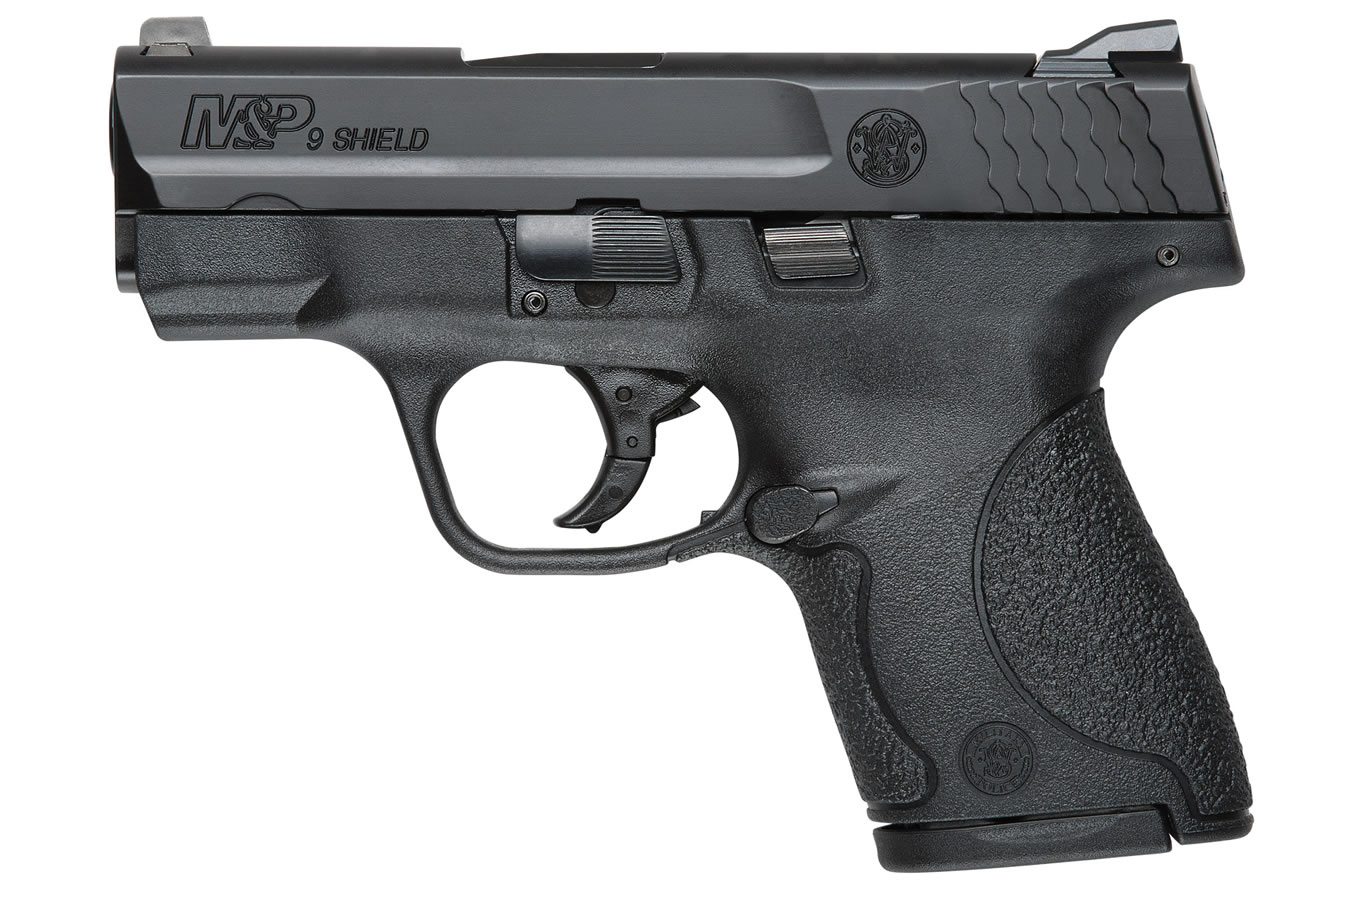 MP9 SHIELD 9MM PISTOL NO THUMB SAFETY